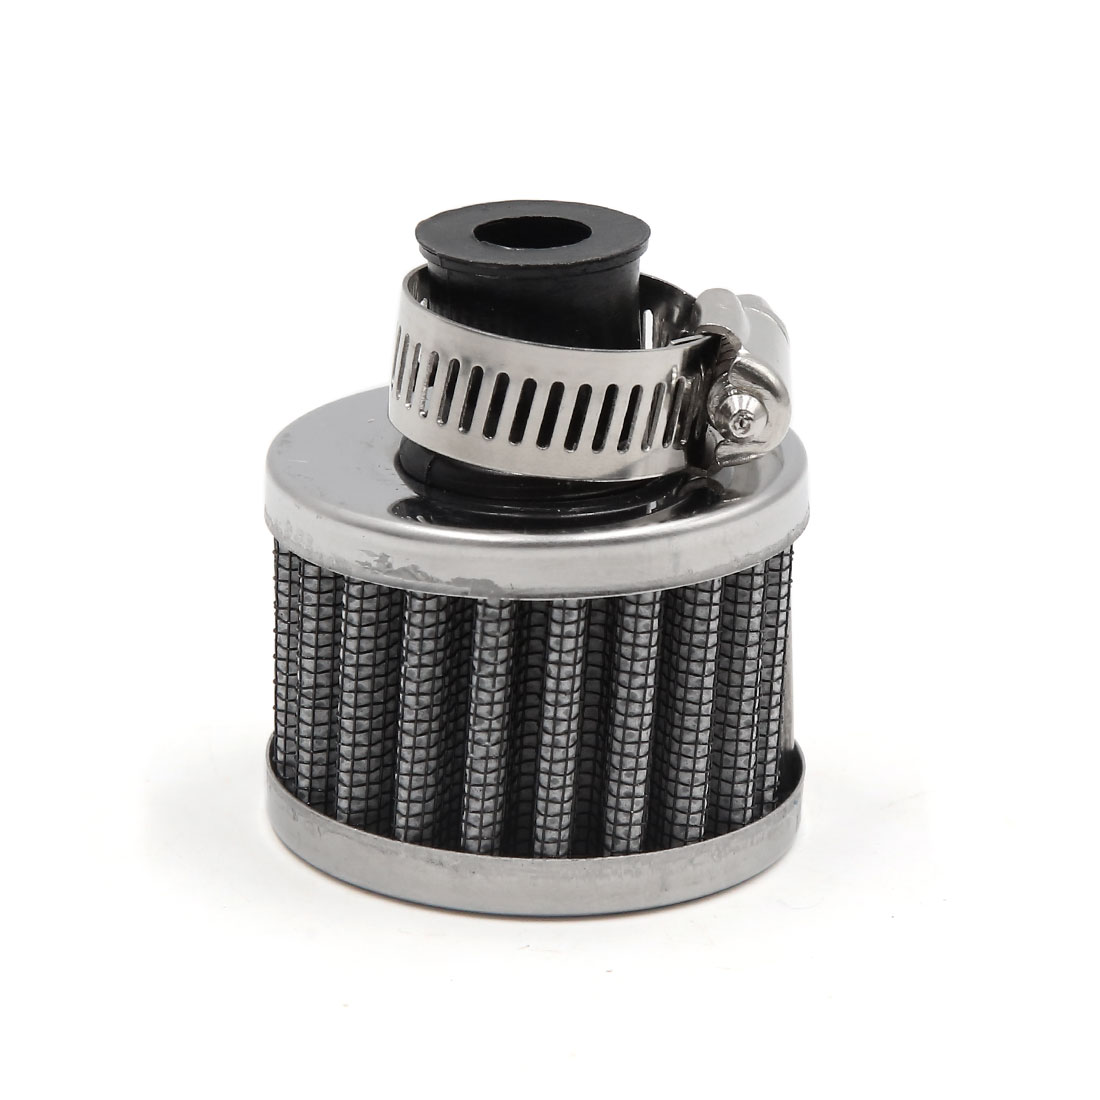 White 11mm Inlet Dia Car Vehicle Air Intake Filter Cleaner w Adjustable Clamp